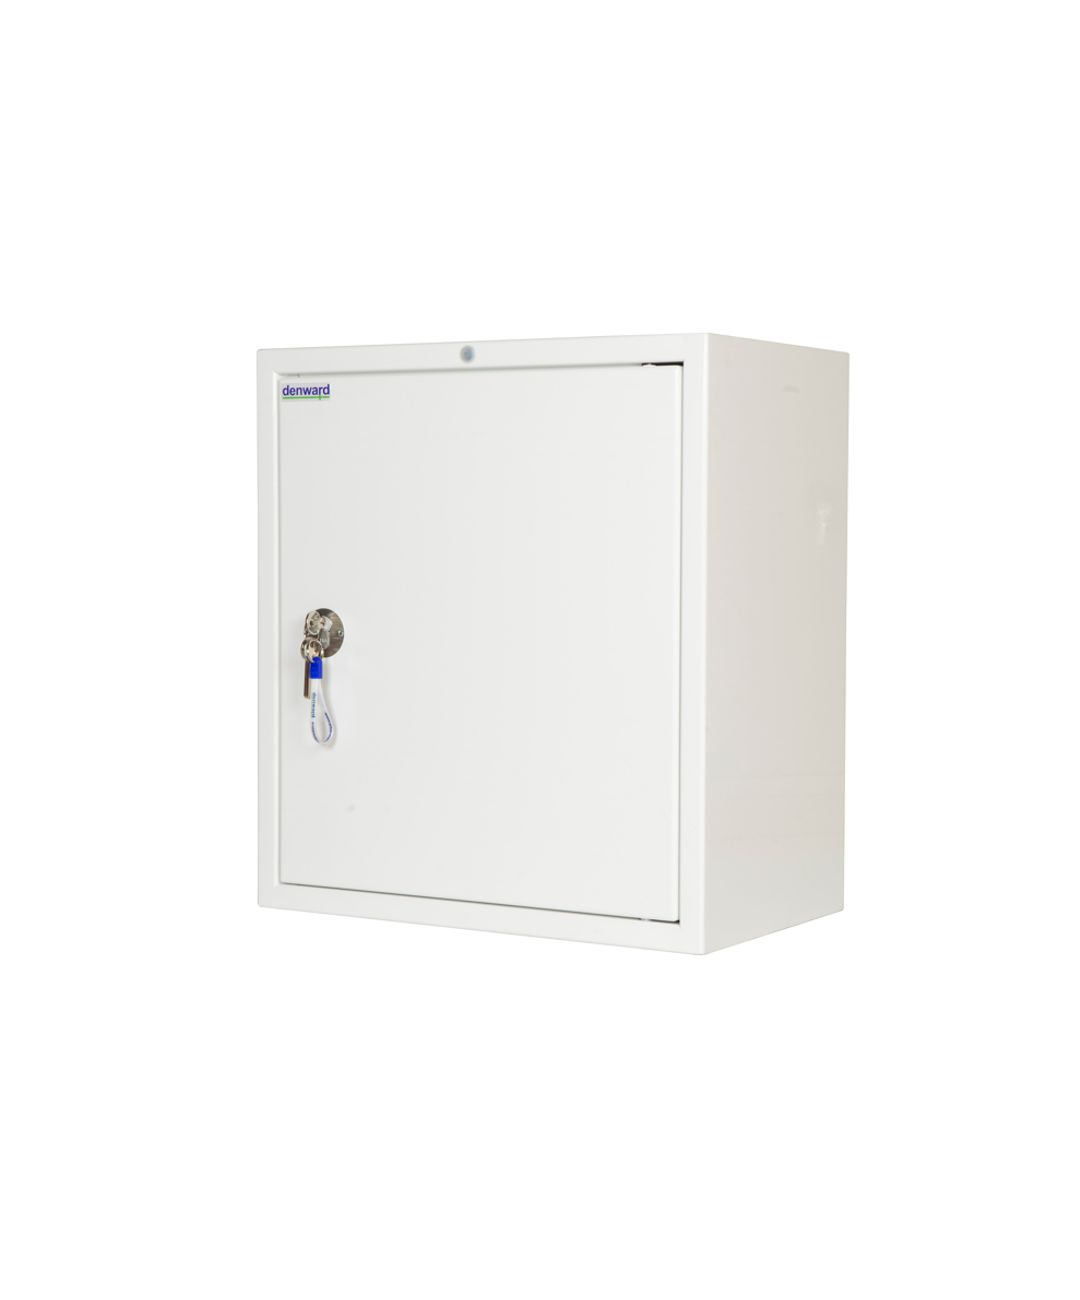 Controlled Drug Cabinet (CDC550) W500 x H550 x D300